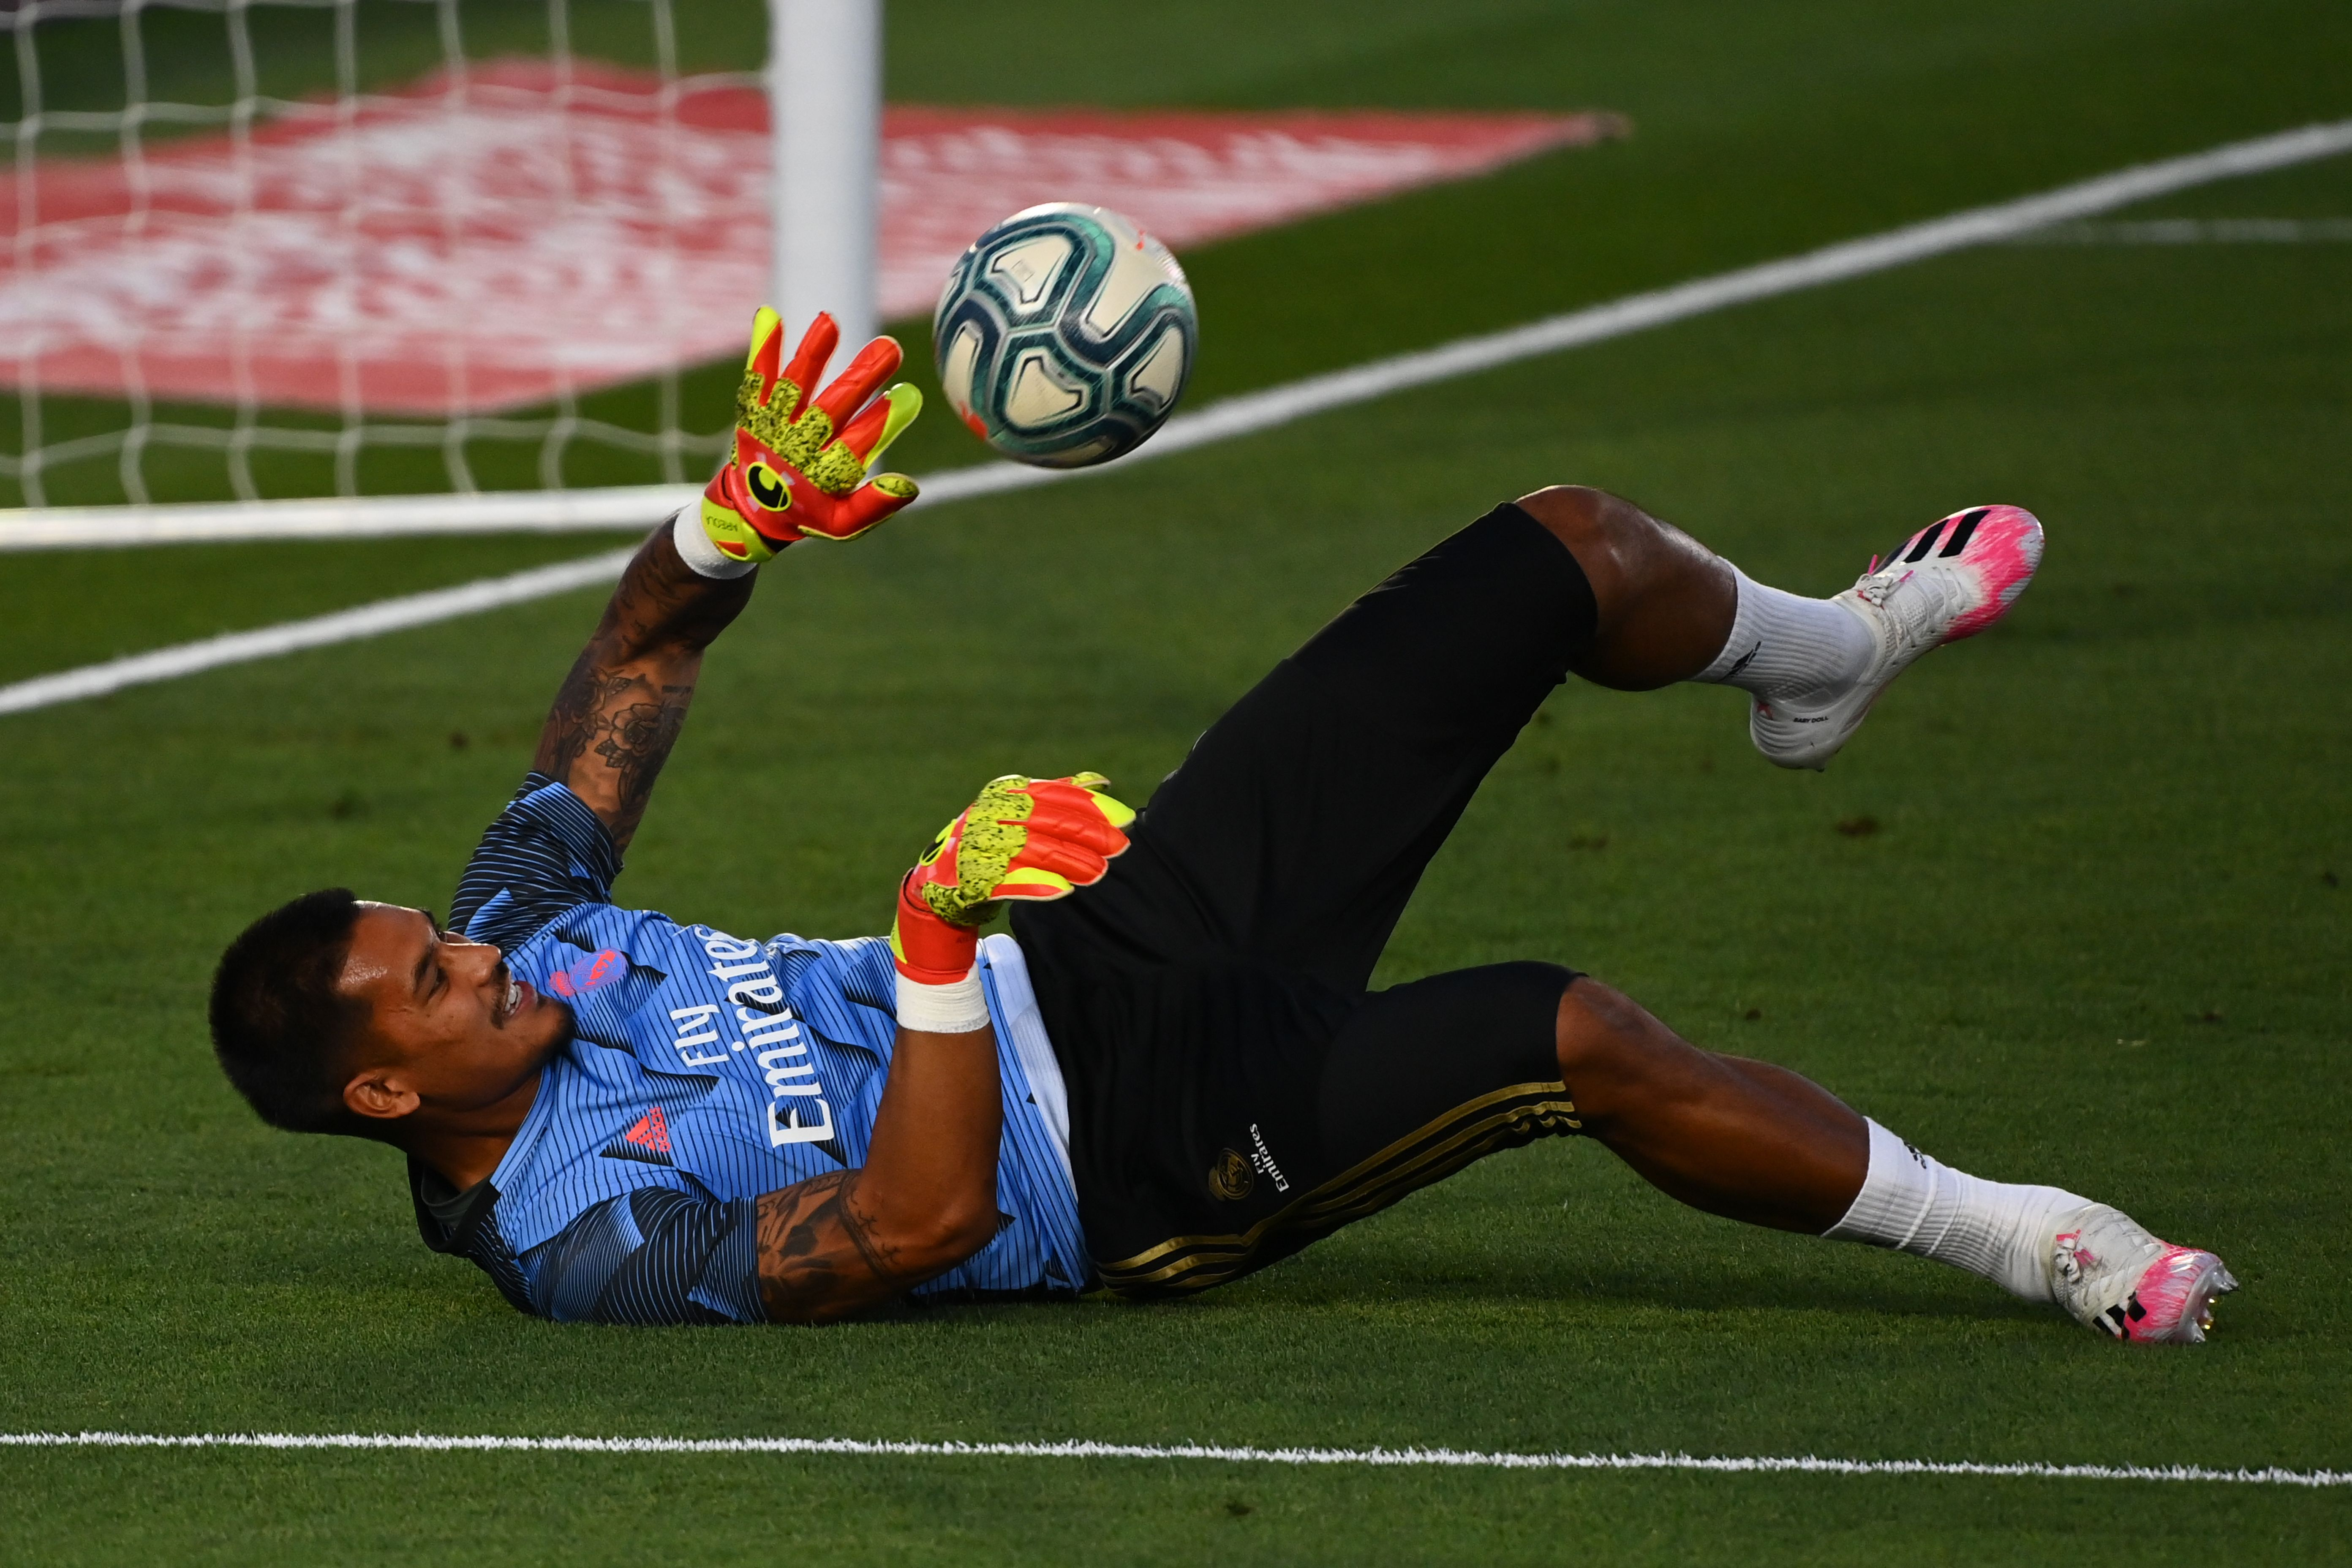 Newcastle United identify Alphonse Areola as a summer target (Areola in action in the picture)